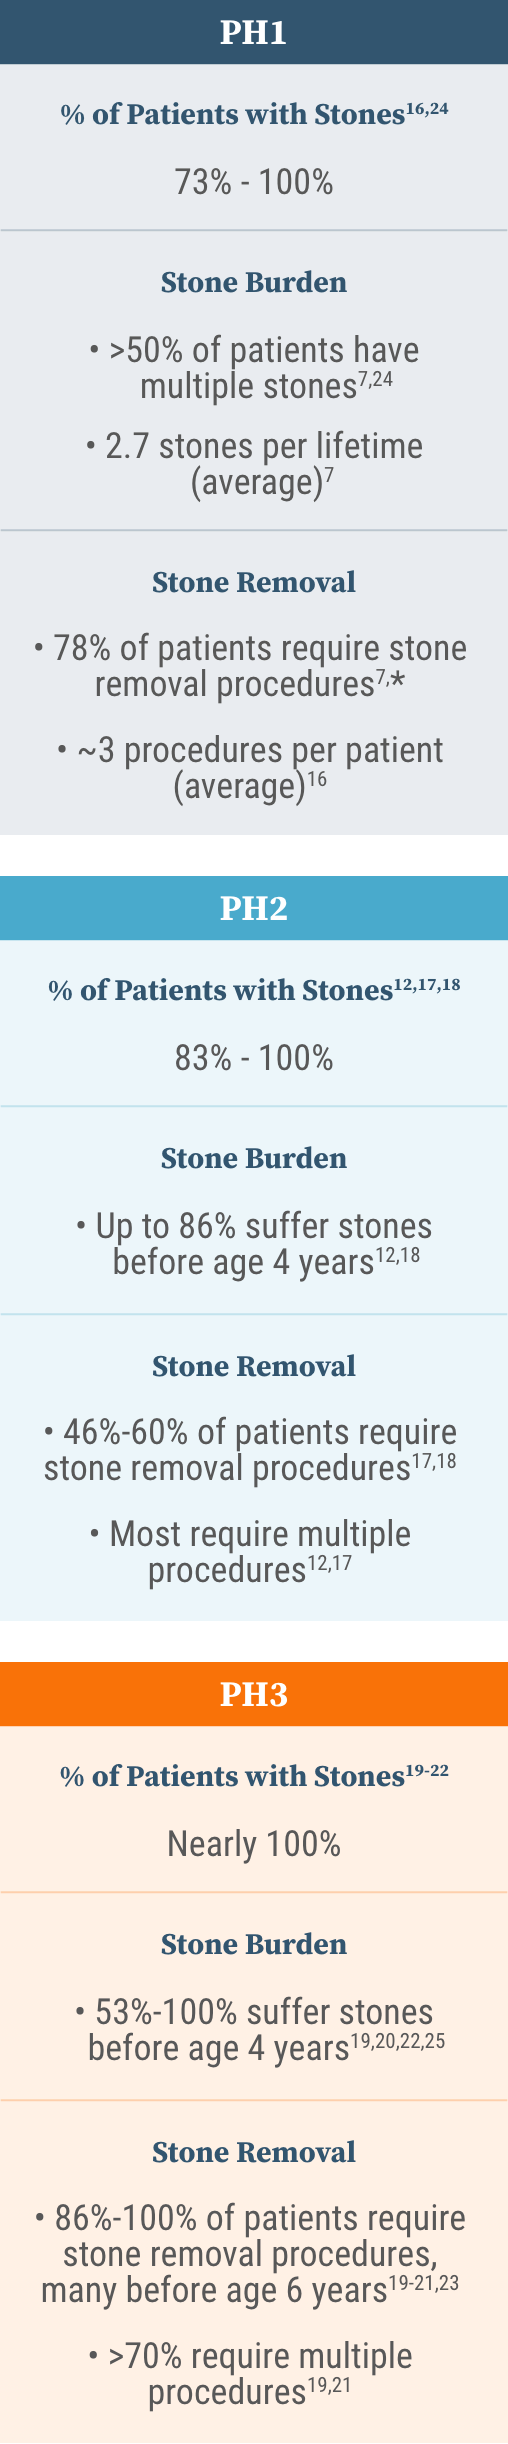 Information about stone burden and number of stone removal procedures in people with PH1, PH2, and PH3